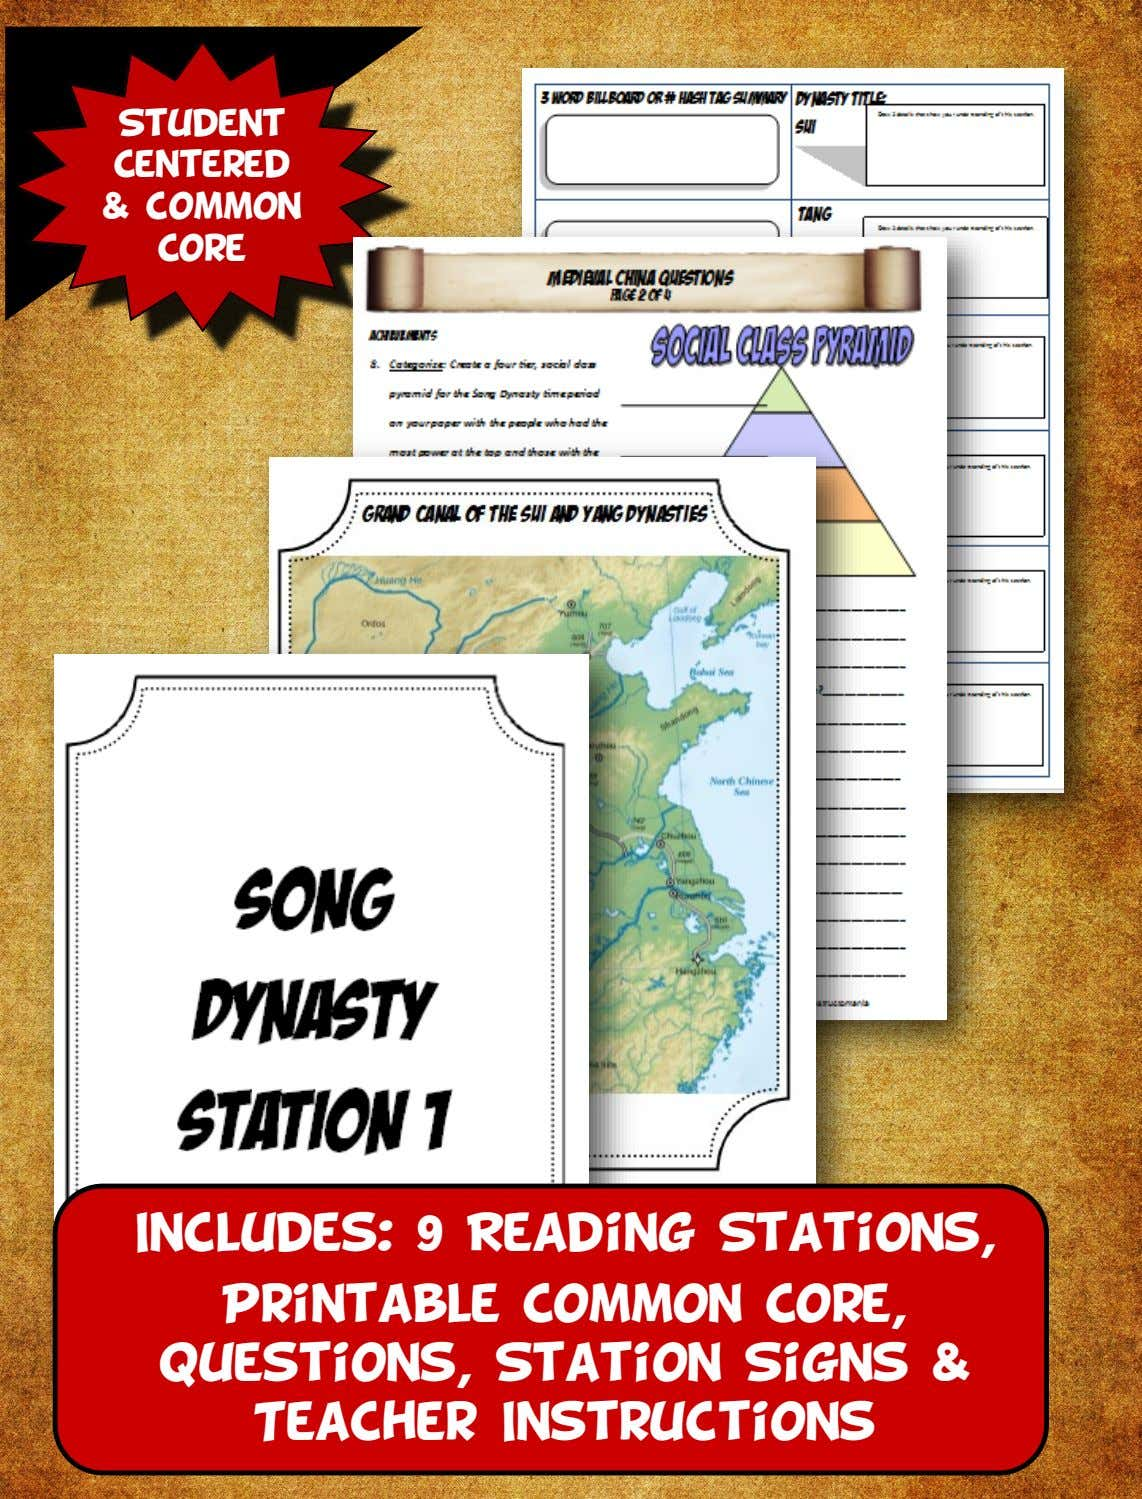 Student Centered & common Core Includes: 9 Reading Stations, Printable Common Core, Questions, Station Signs &